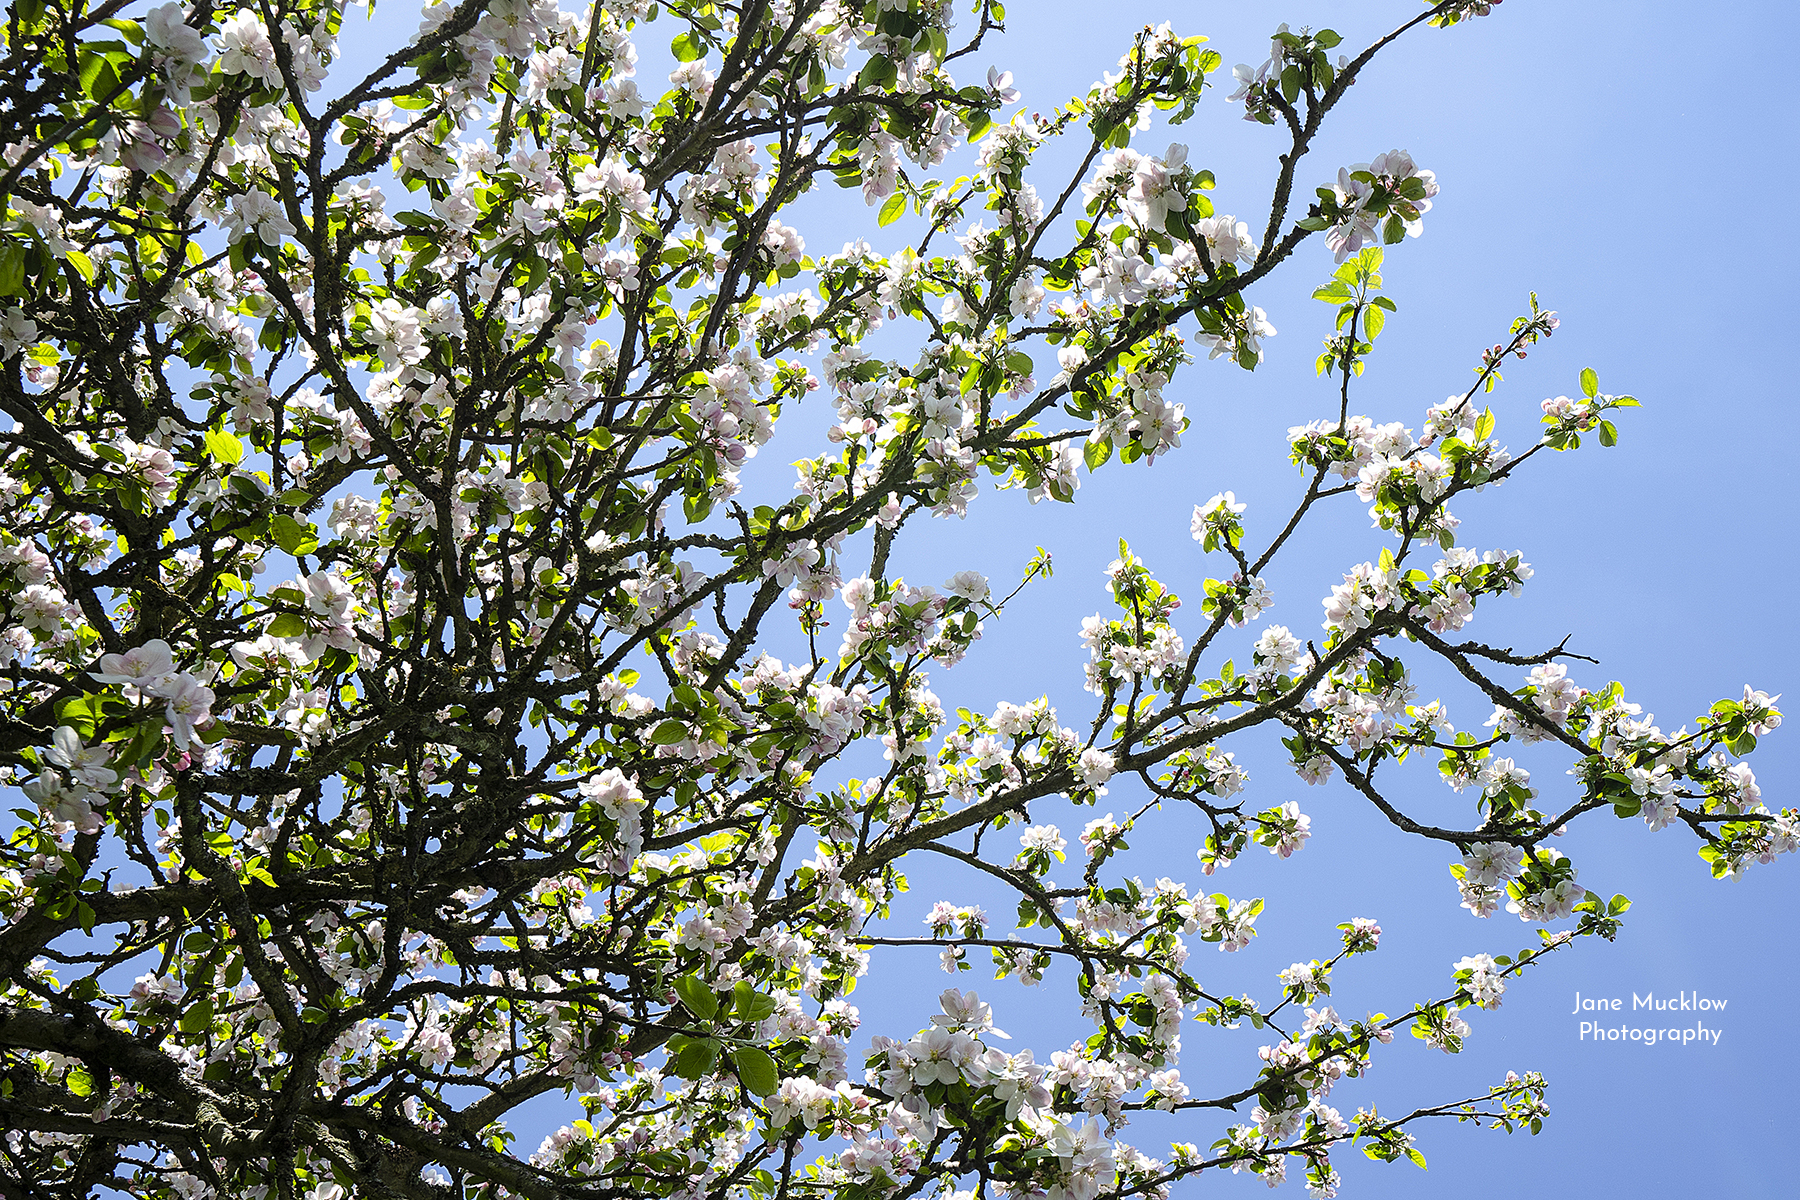 Photo of apple blossom on a blue sky by Jane Mucklow